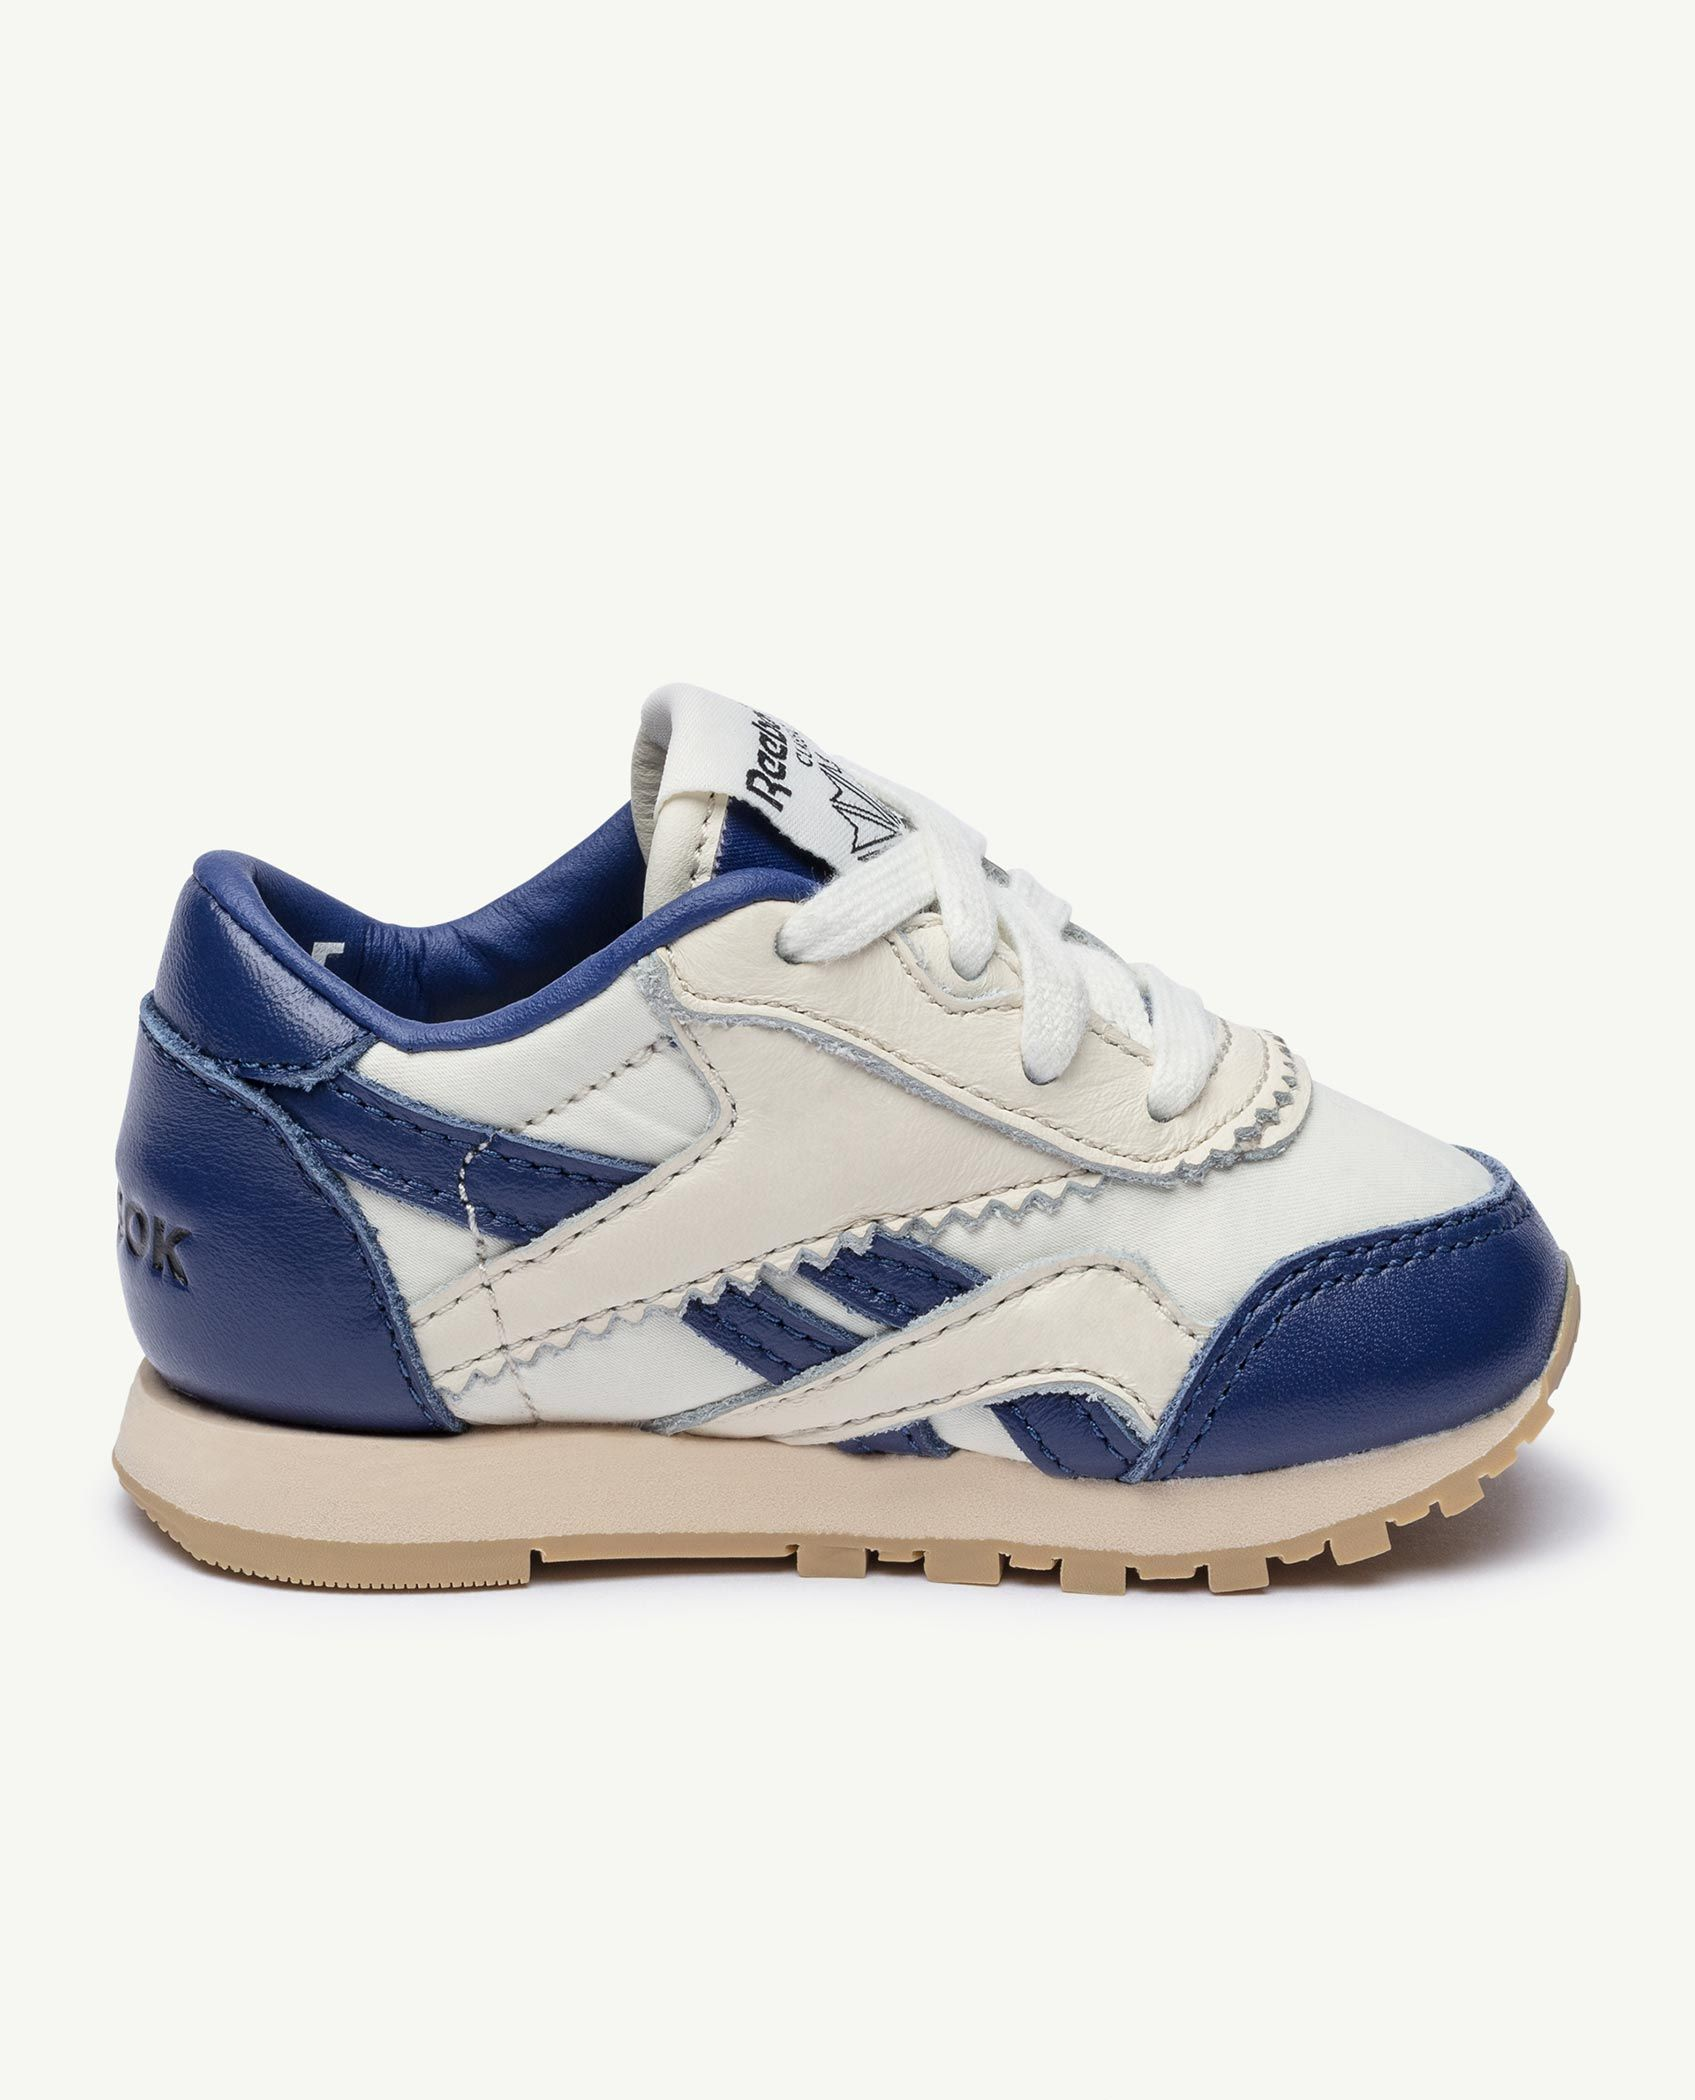 Reebok x The Animals Observatory Classic Nylon Navy Baby img-2